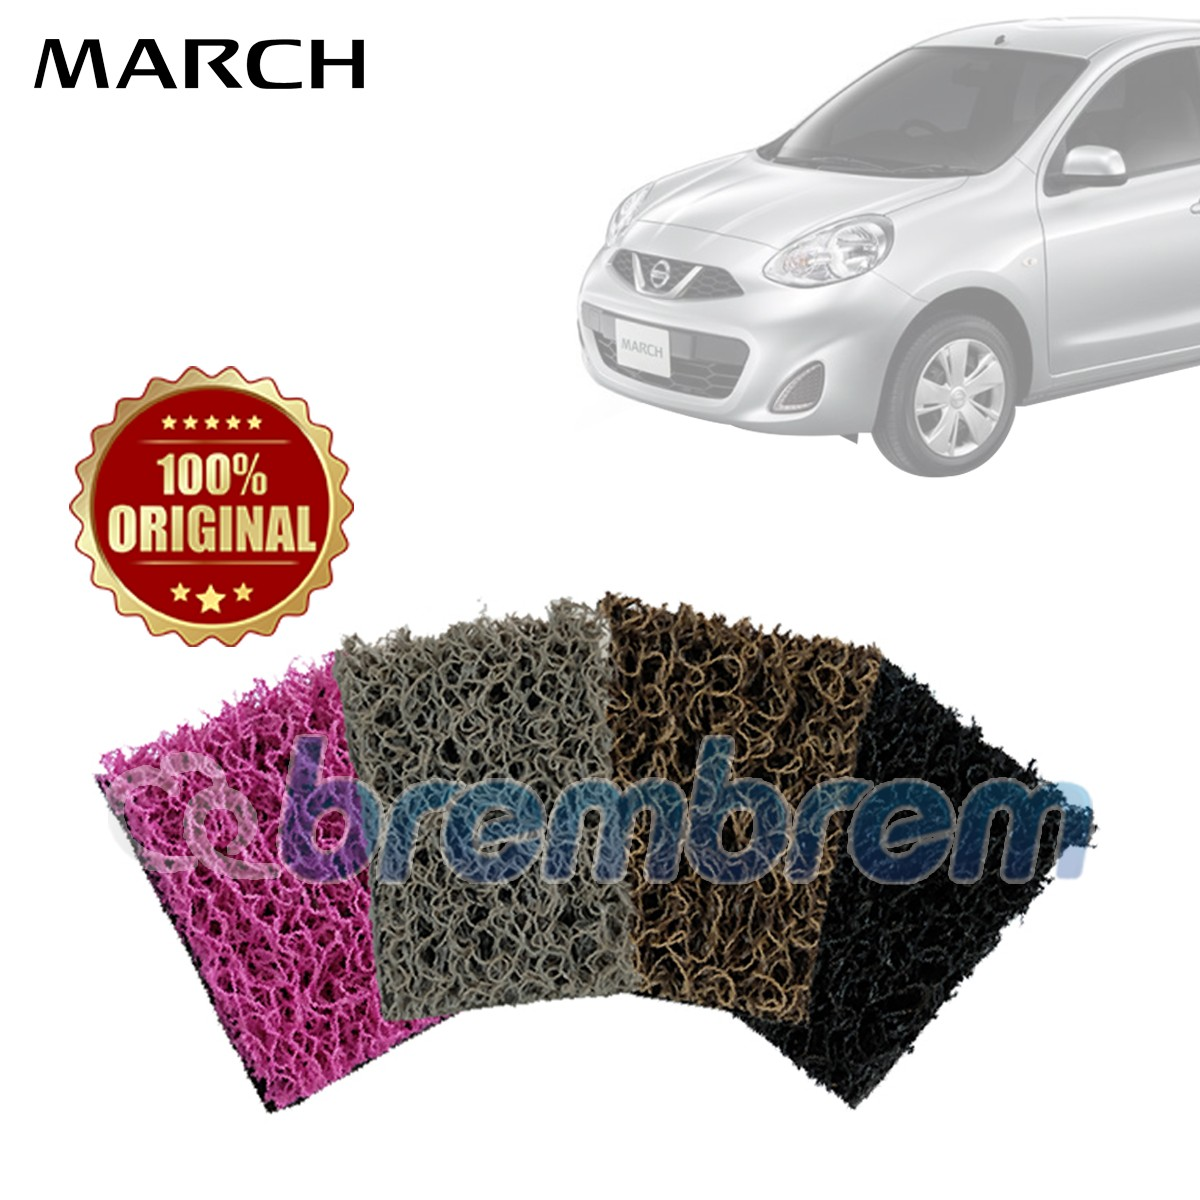 KARPET COMFORT DELUXE + BAGASI NISSAN ALL NEW MARCH